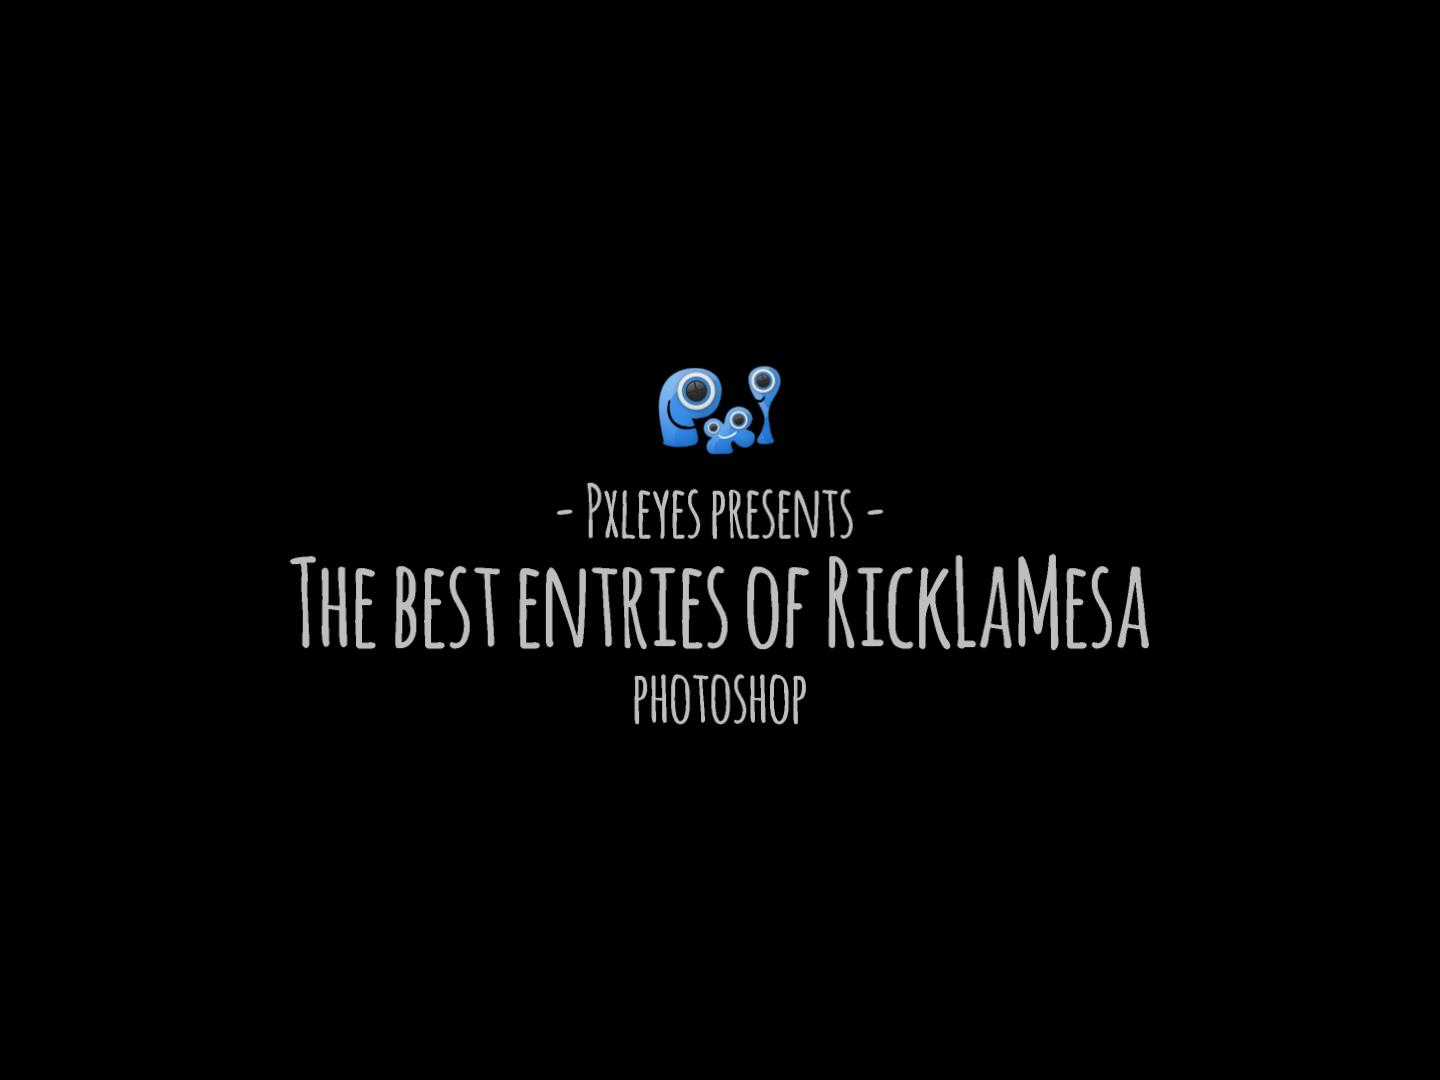 The best entries by RickLaMesa